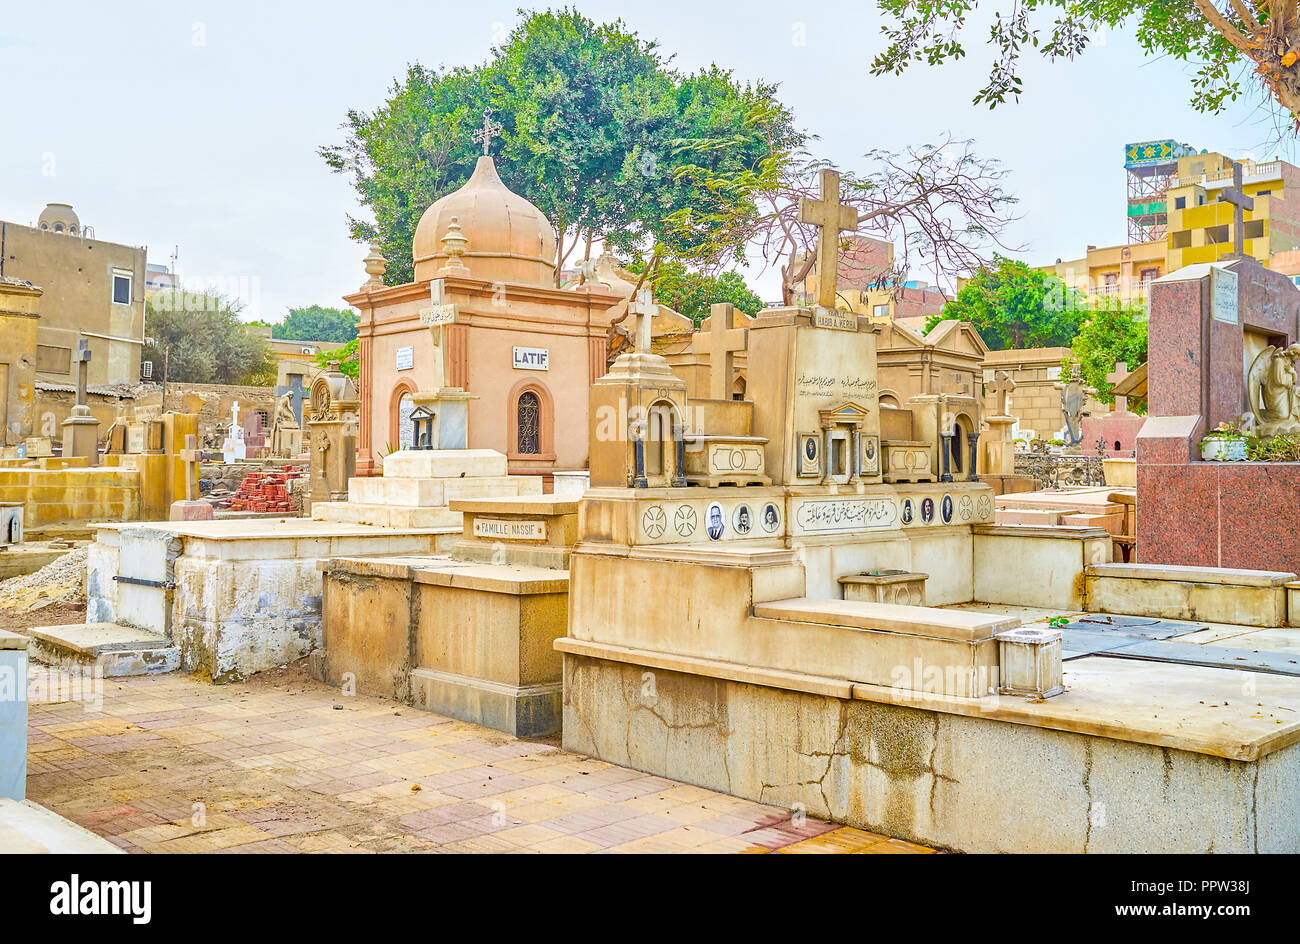 CAIRO, EGYPT - DECEMBER 23, 2017: The old christian cemetery with decrepit crypts and tombs, on December 23 in Cairo - Stock Image